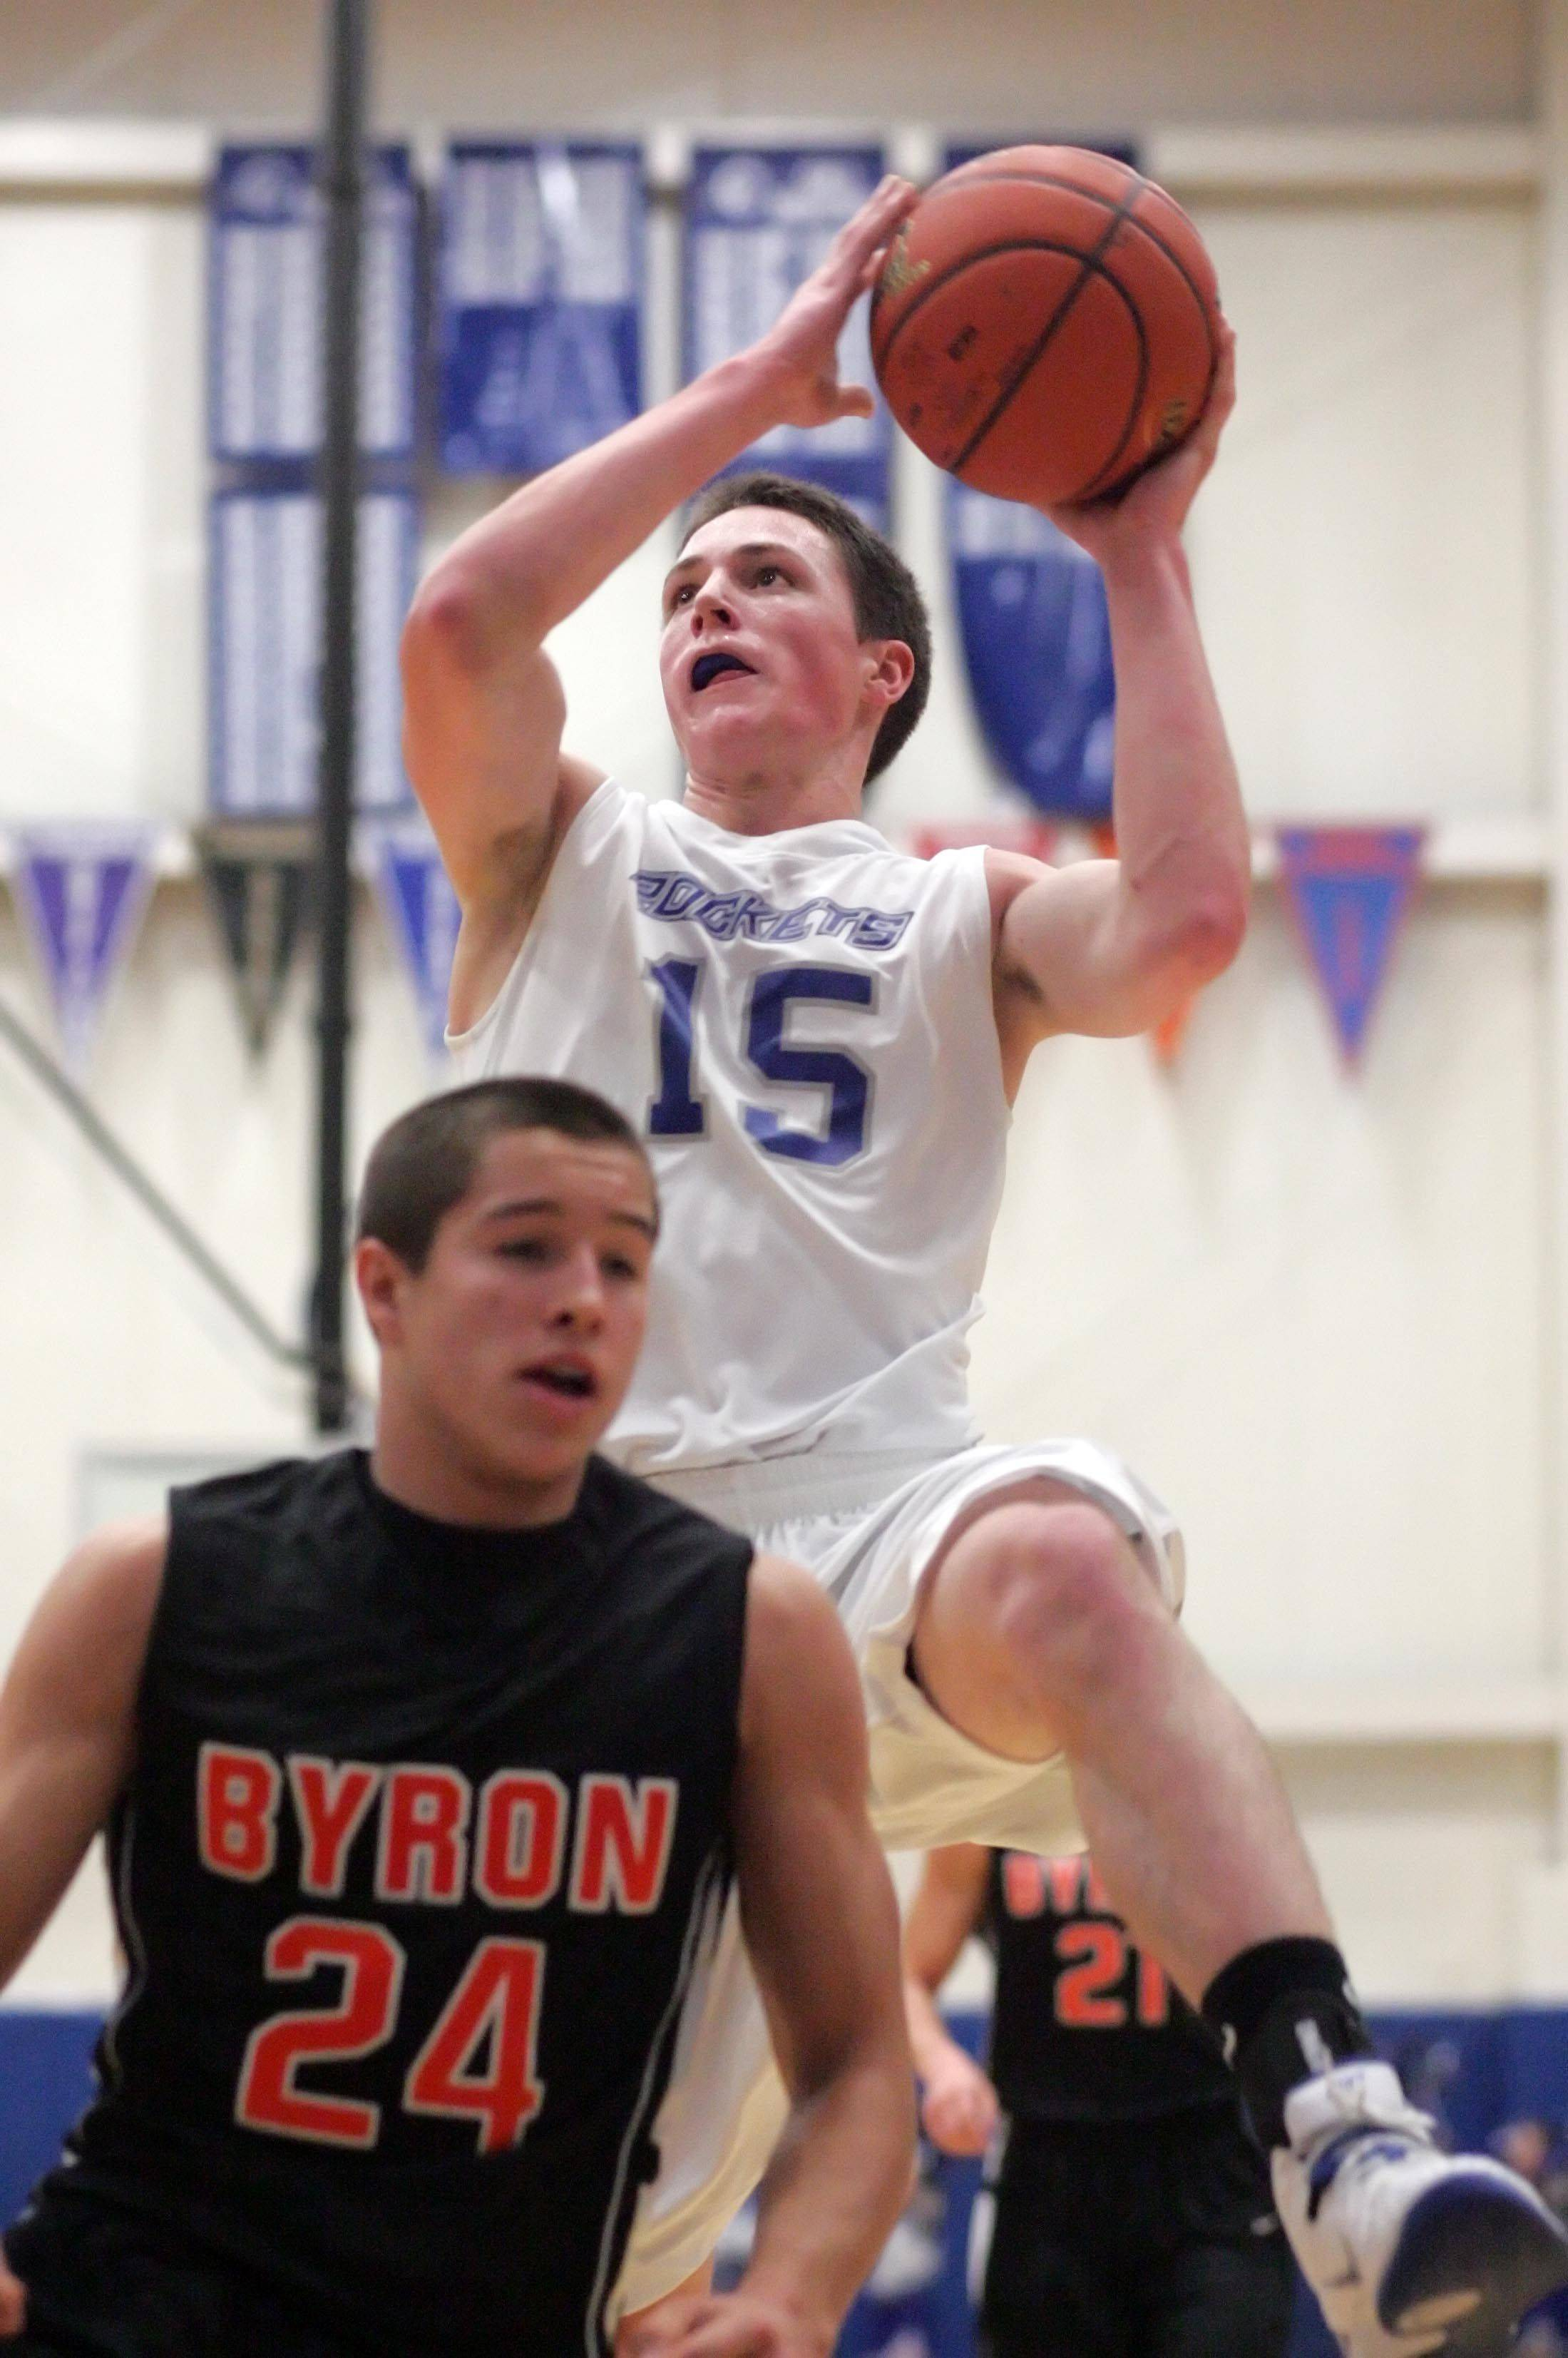 Images from the Byron vs. Burlington Central boys basketball game Friday, December 3, 2010.